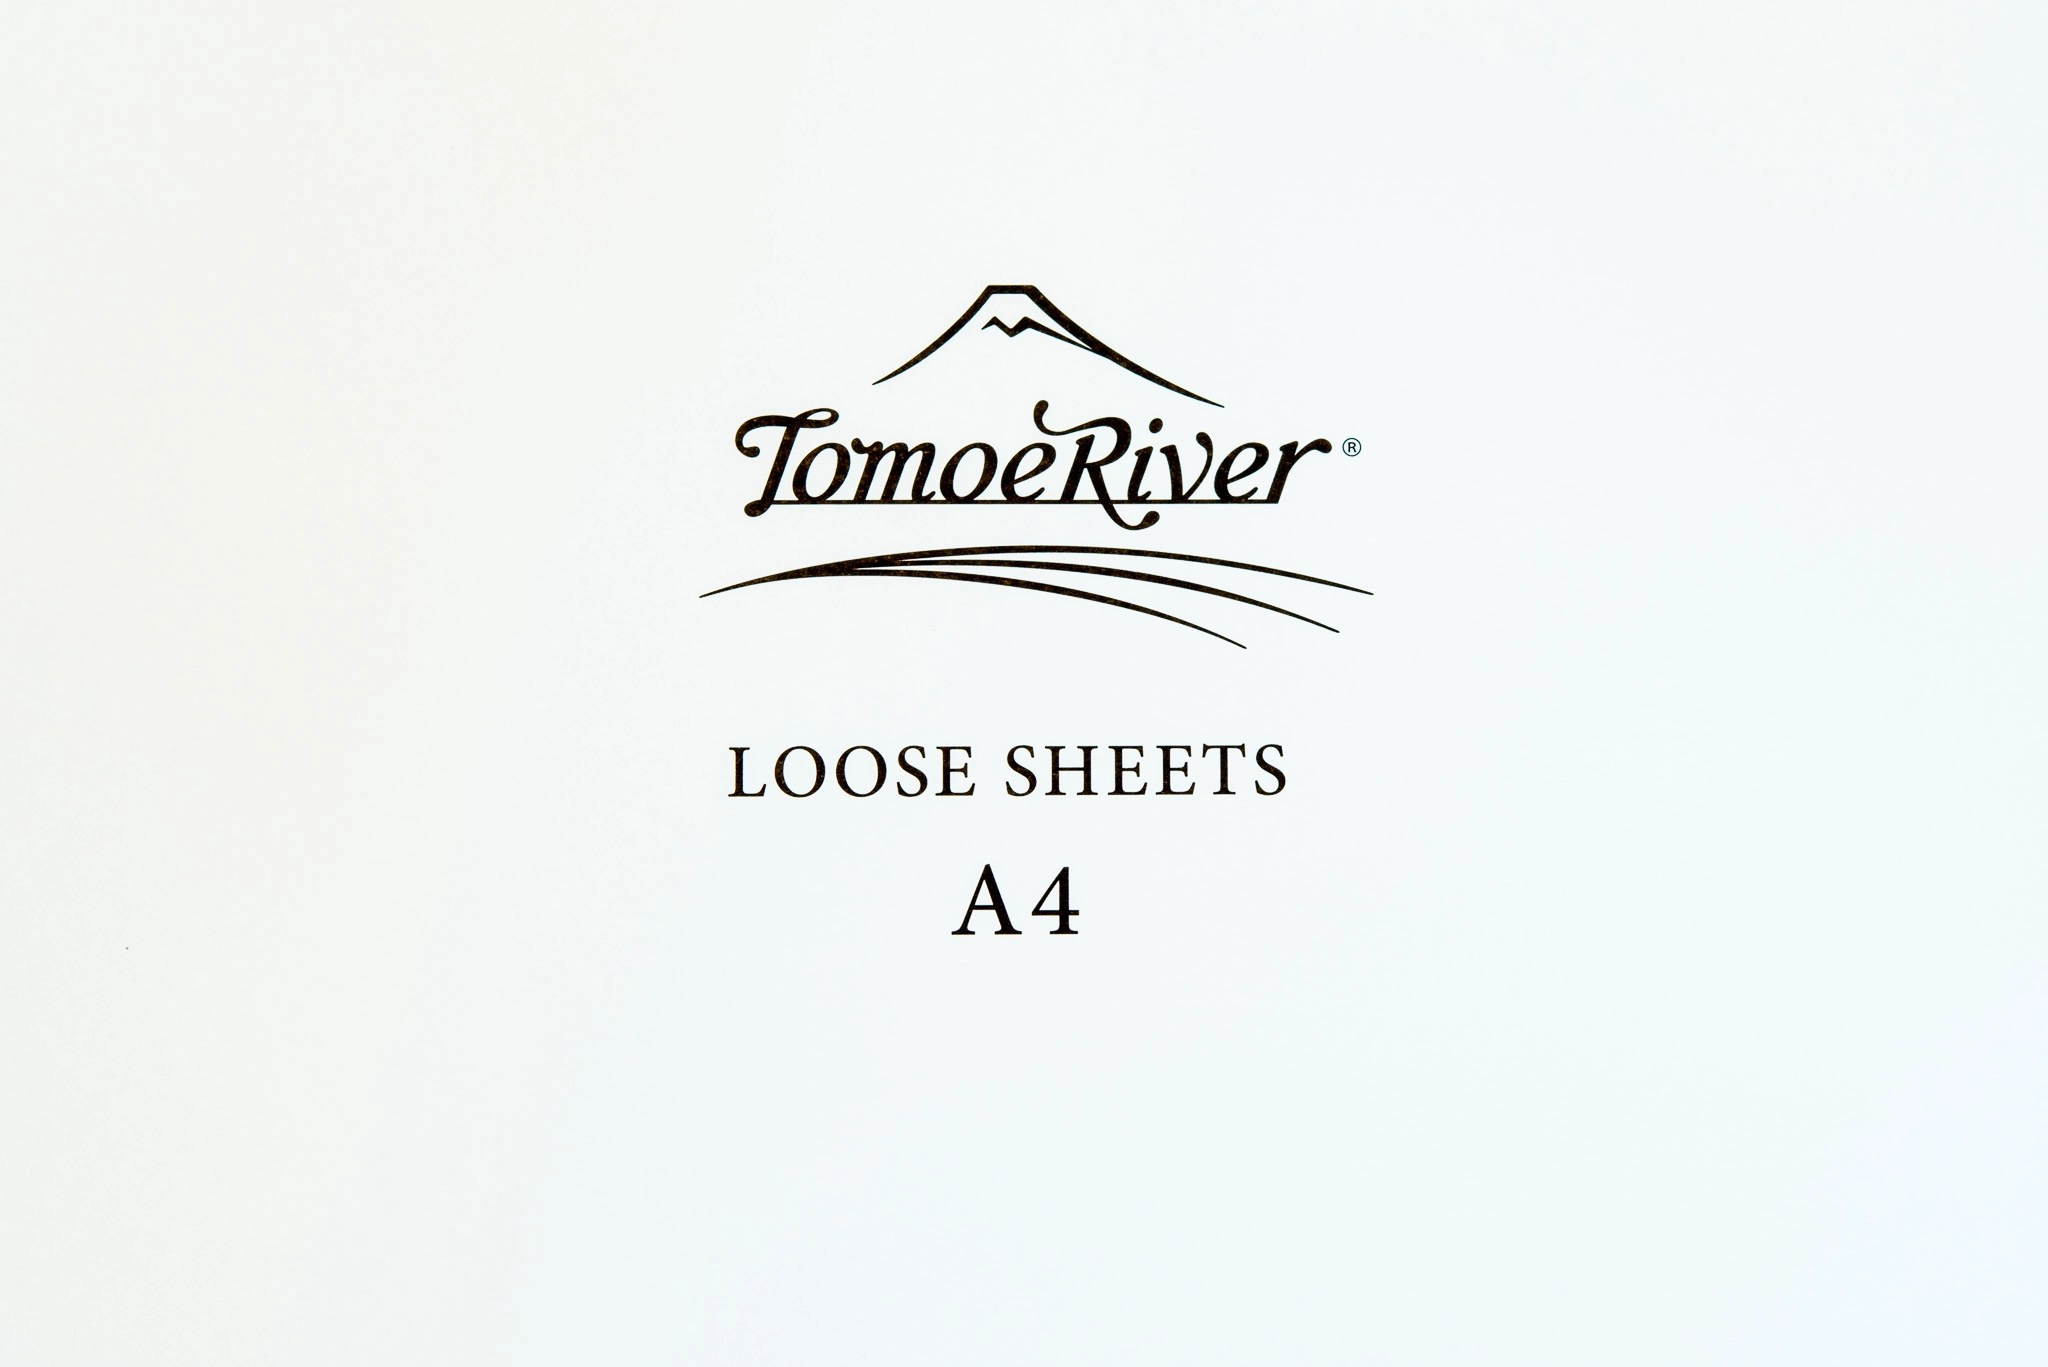 68gsm White Tomoe River A4 Loose Sheets